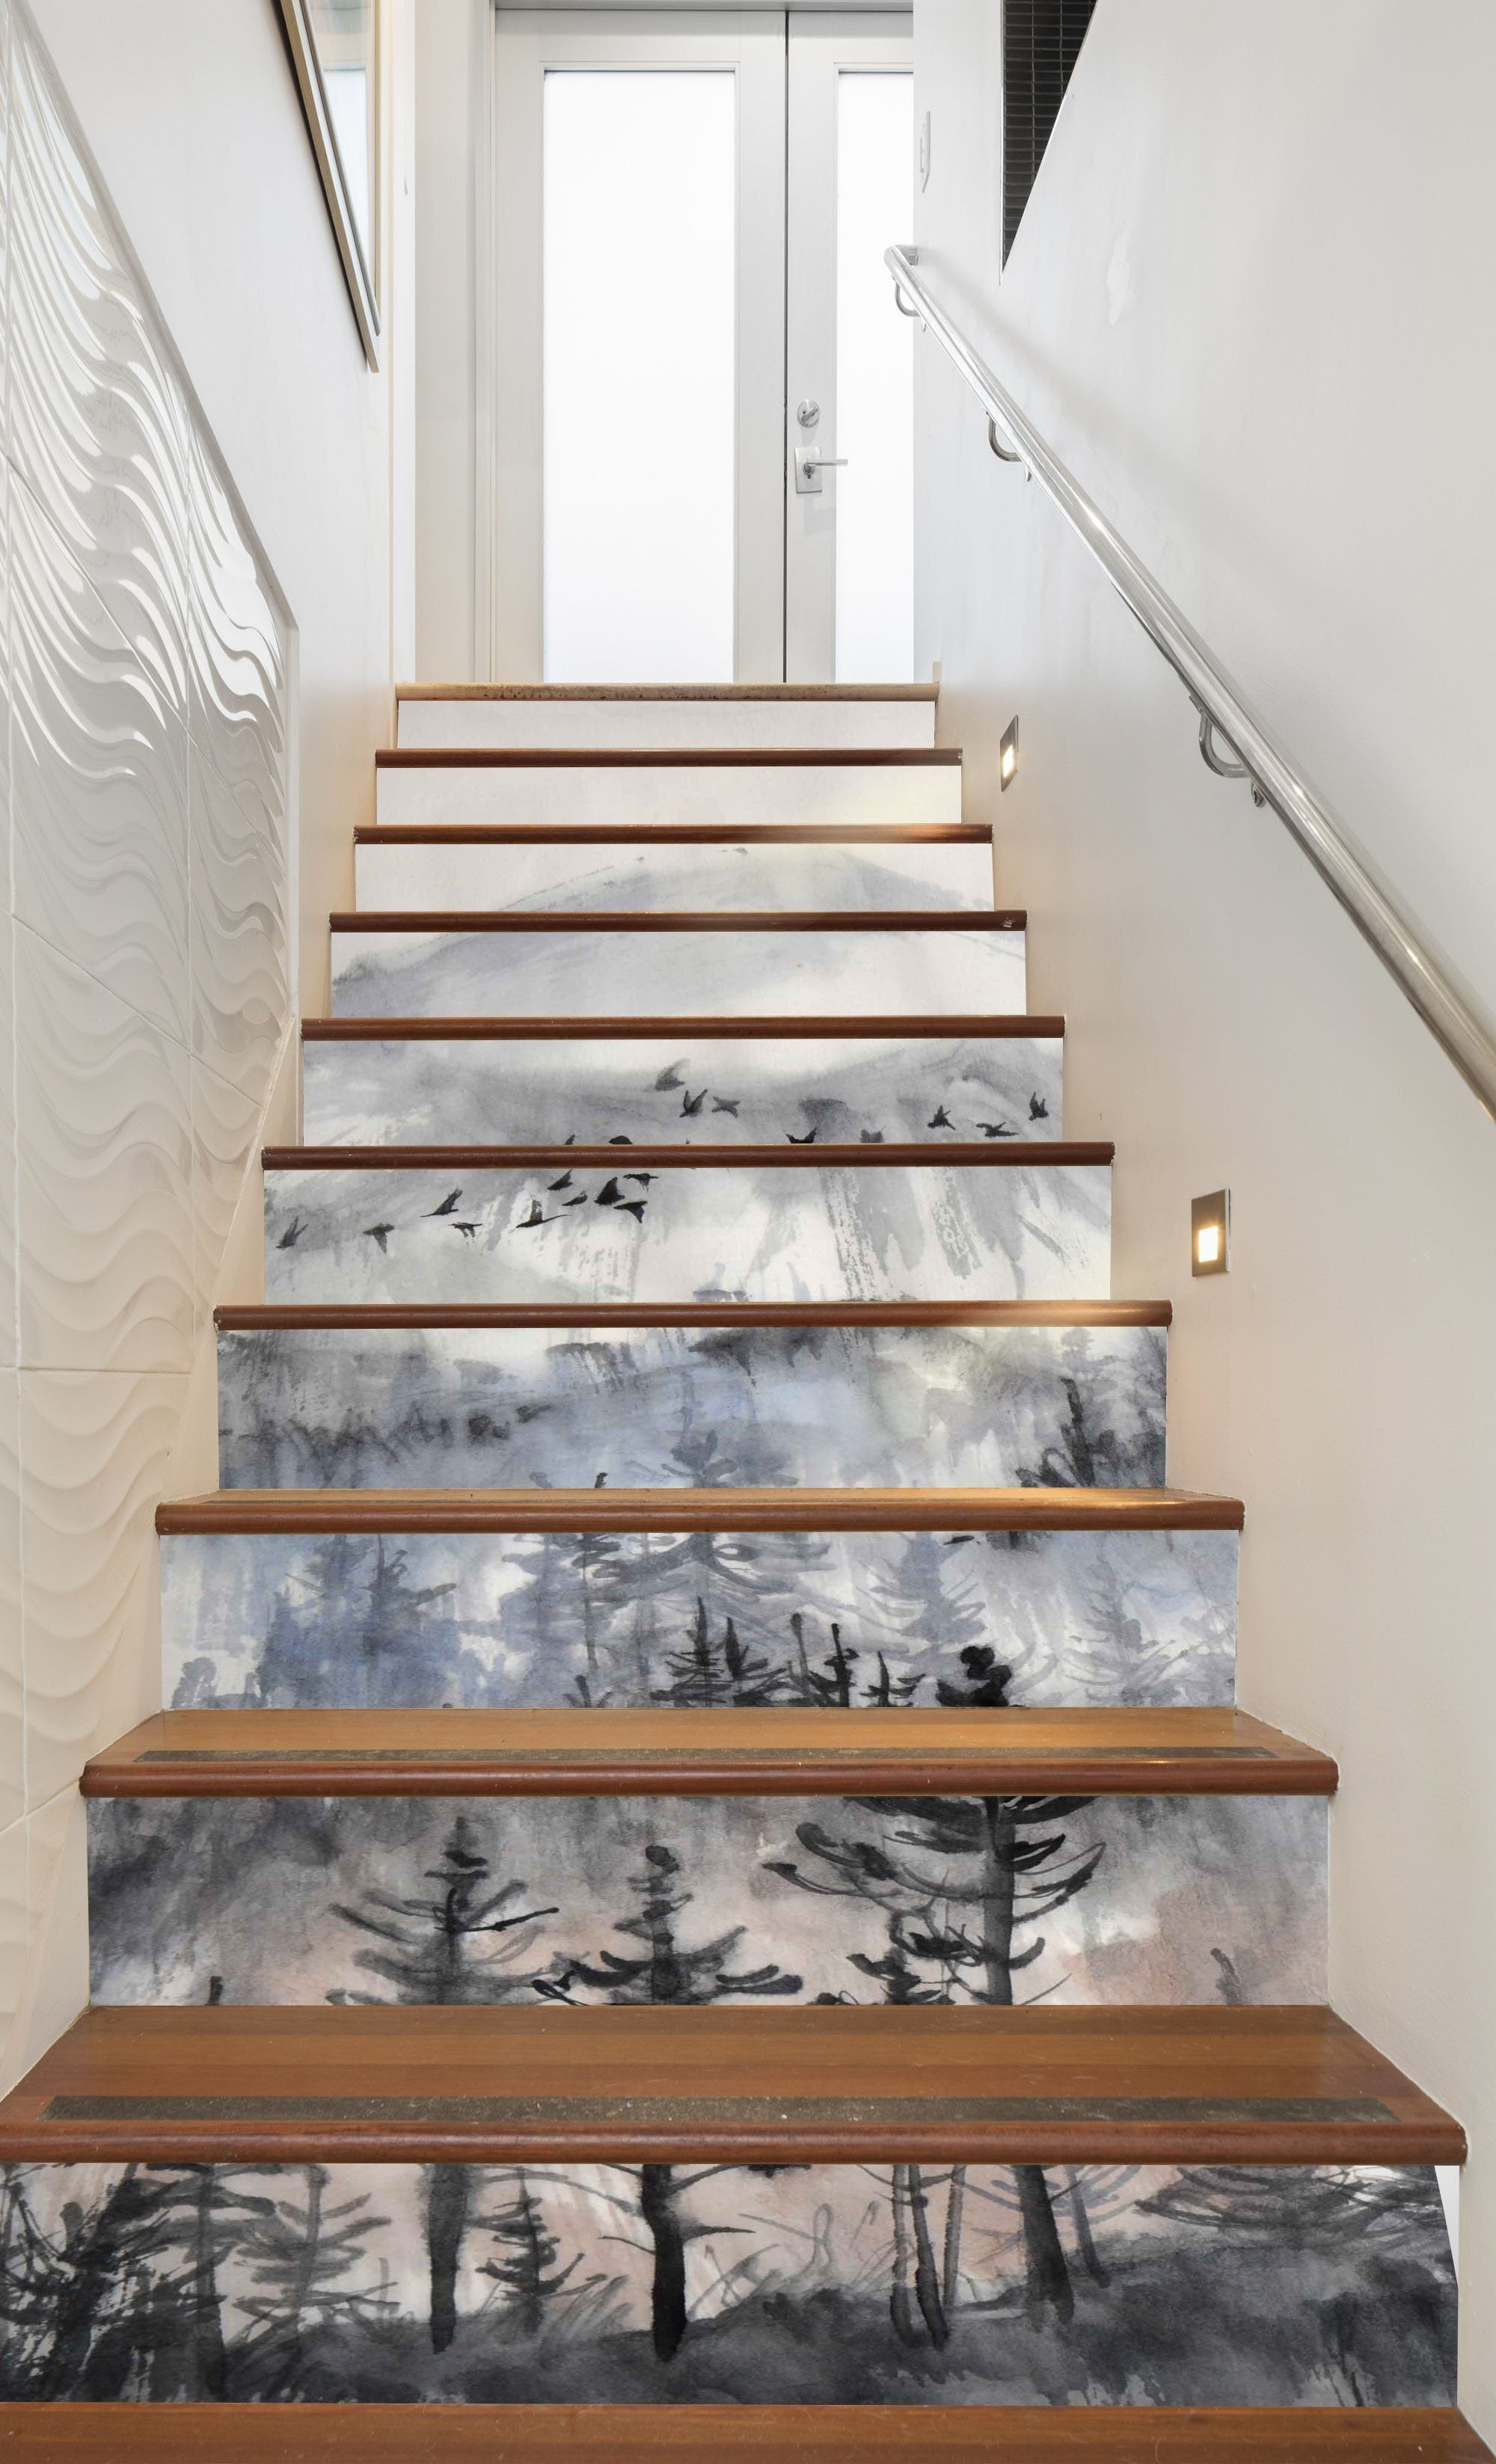 3D Art Painting 983 Stair Risers Wallpaper AJ Wallpaper